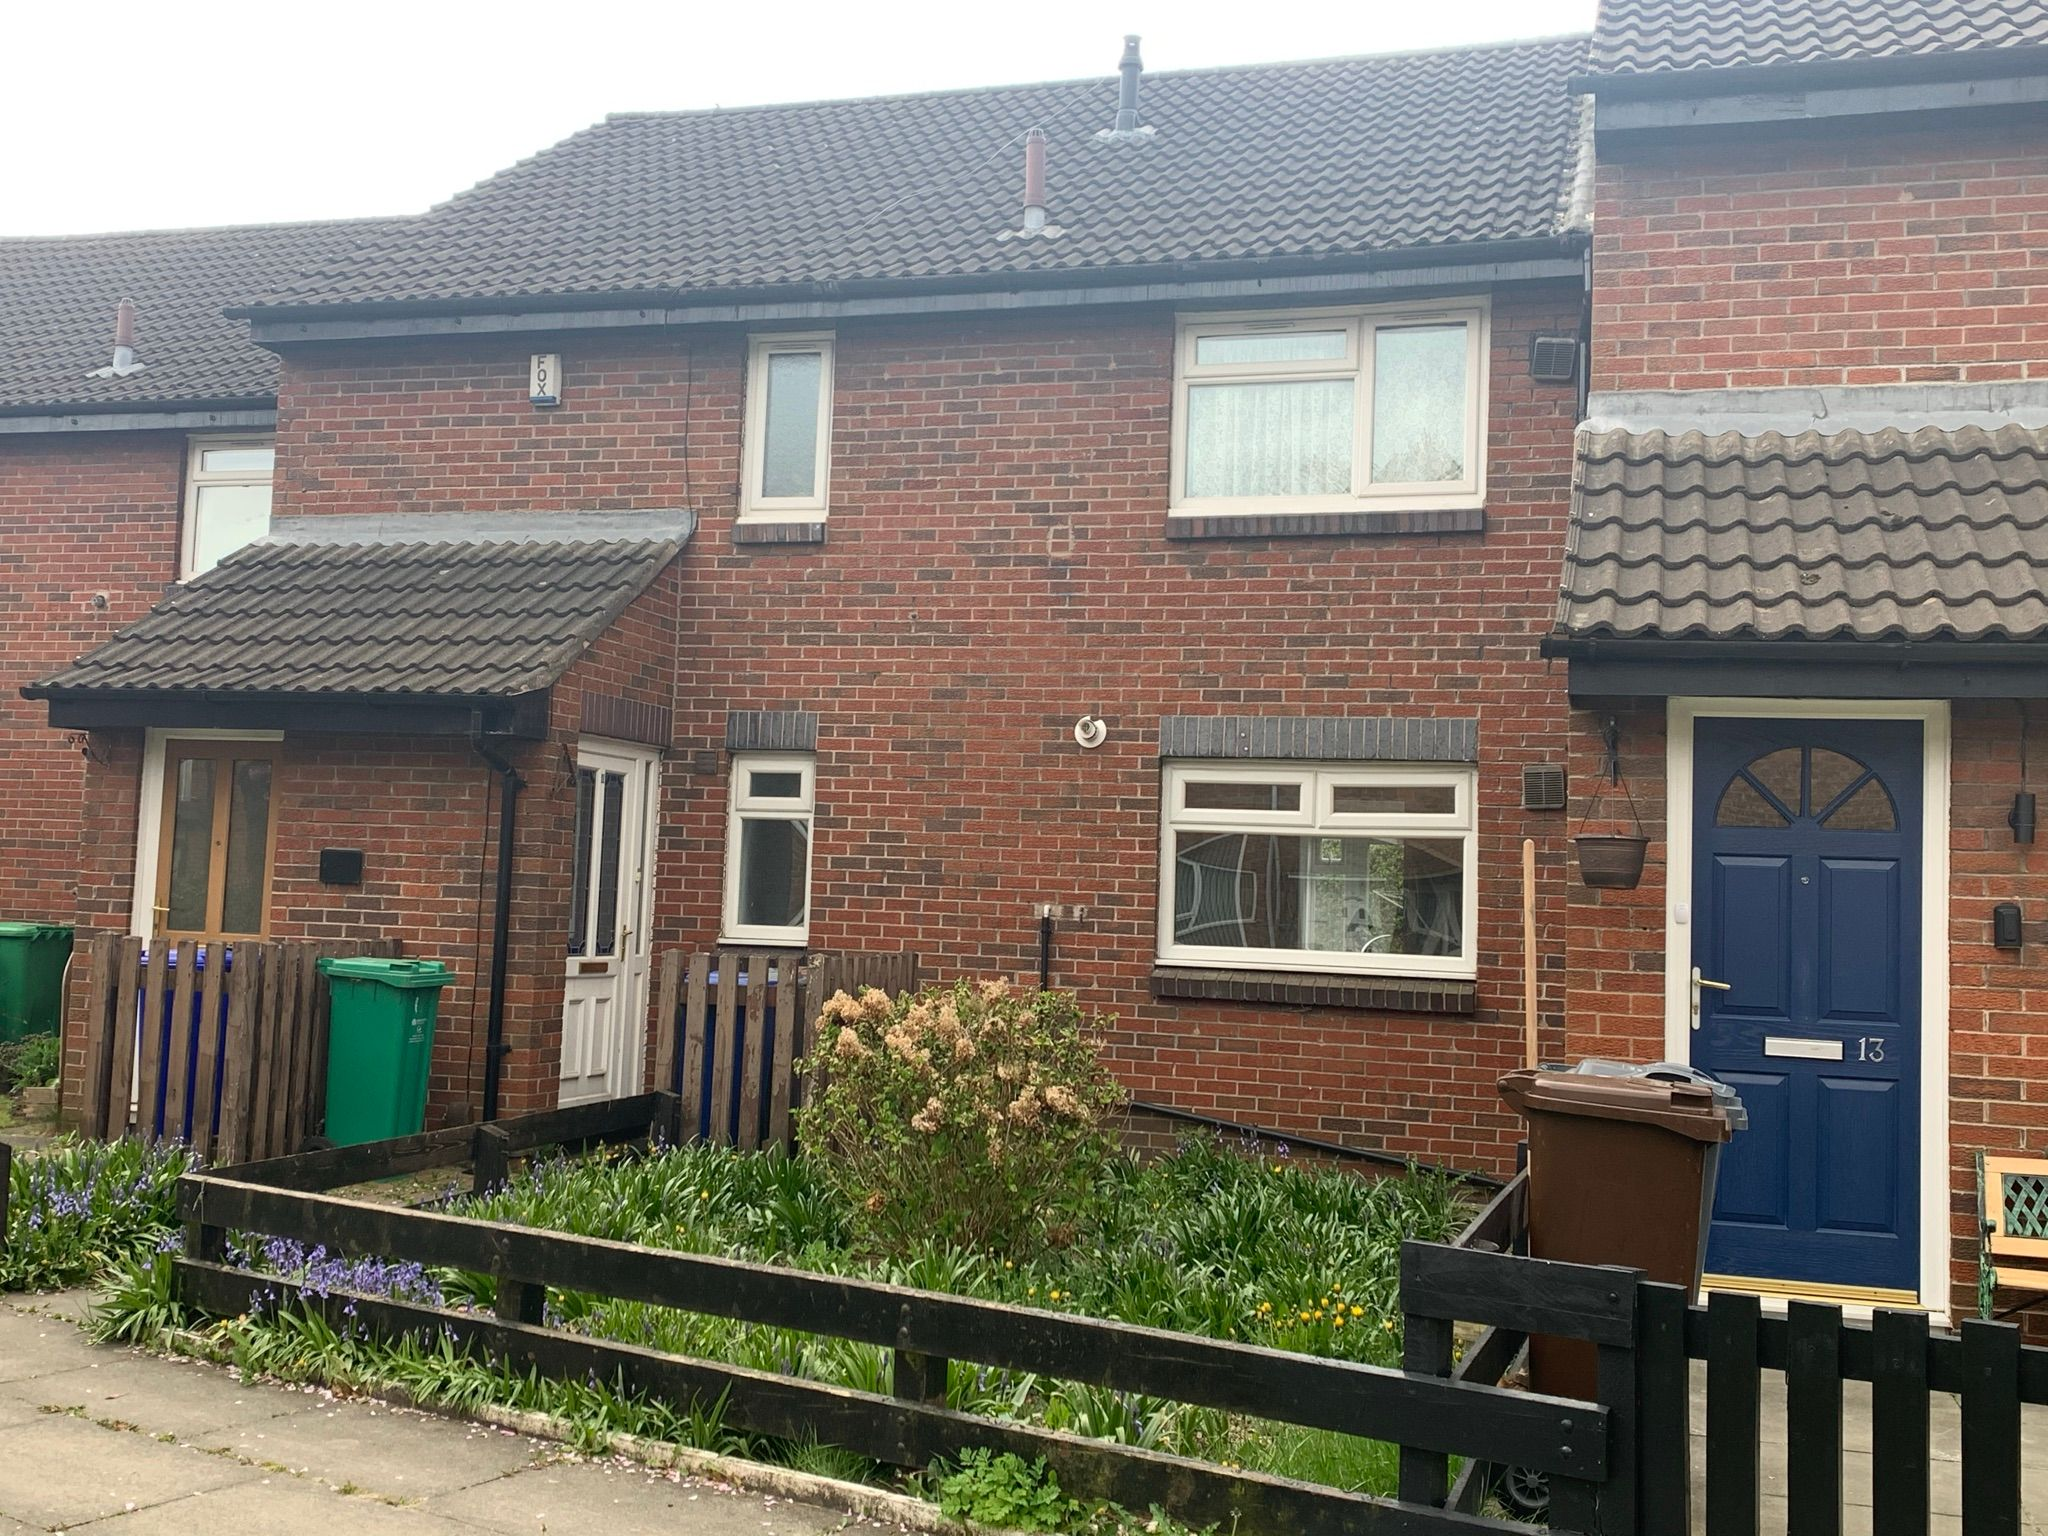 2 bedroom ground floor flat/apartment To Let in Manchester - Exterior.